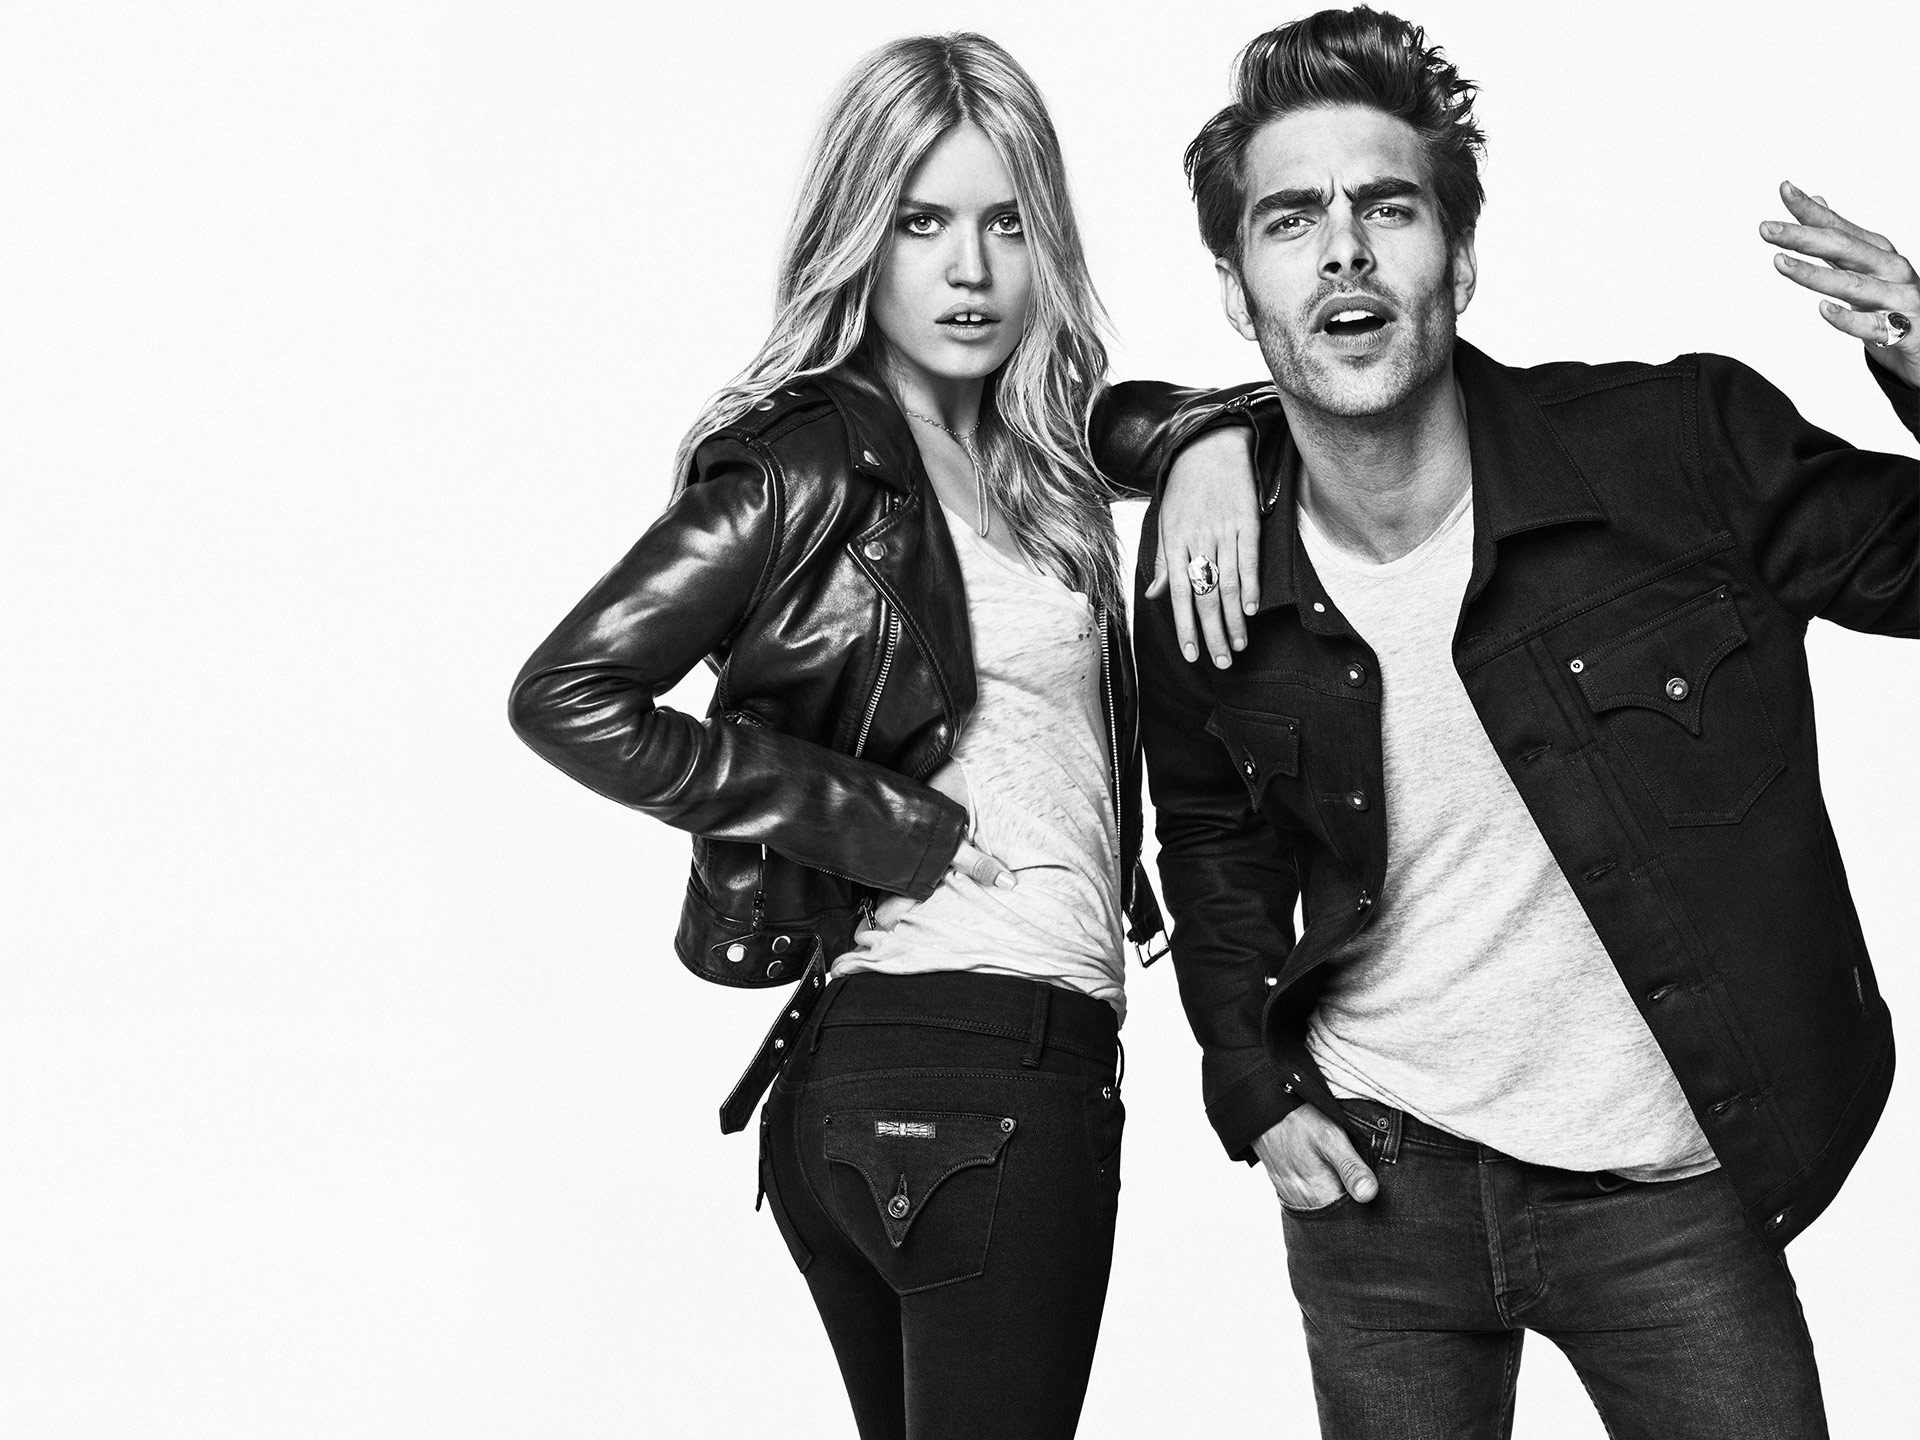 Hudson Jeans Official Site - Premium Denim, Designer Jeans & Clothing